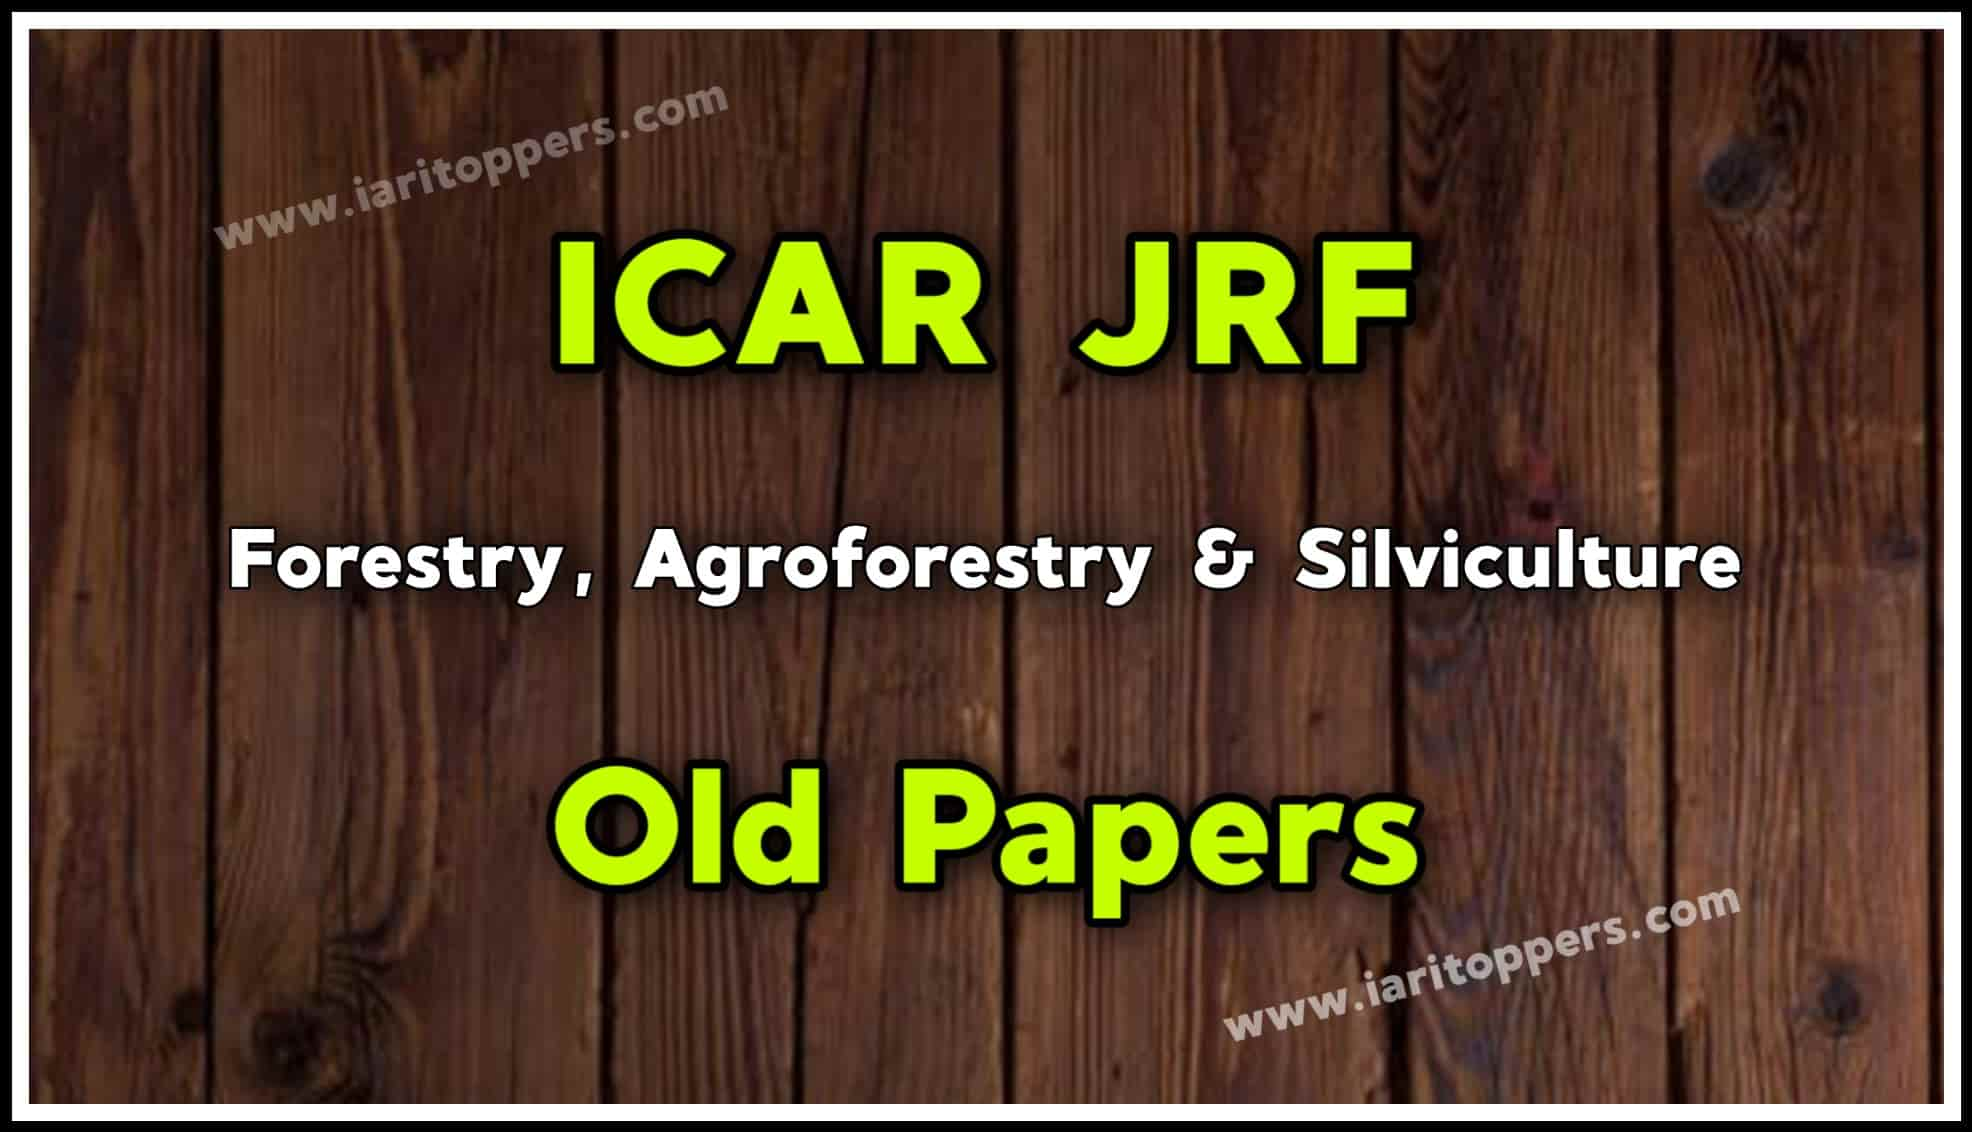 ICAR JRF Forestry, Agroforestry and Silviculture Old Papers PDF Download